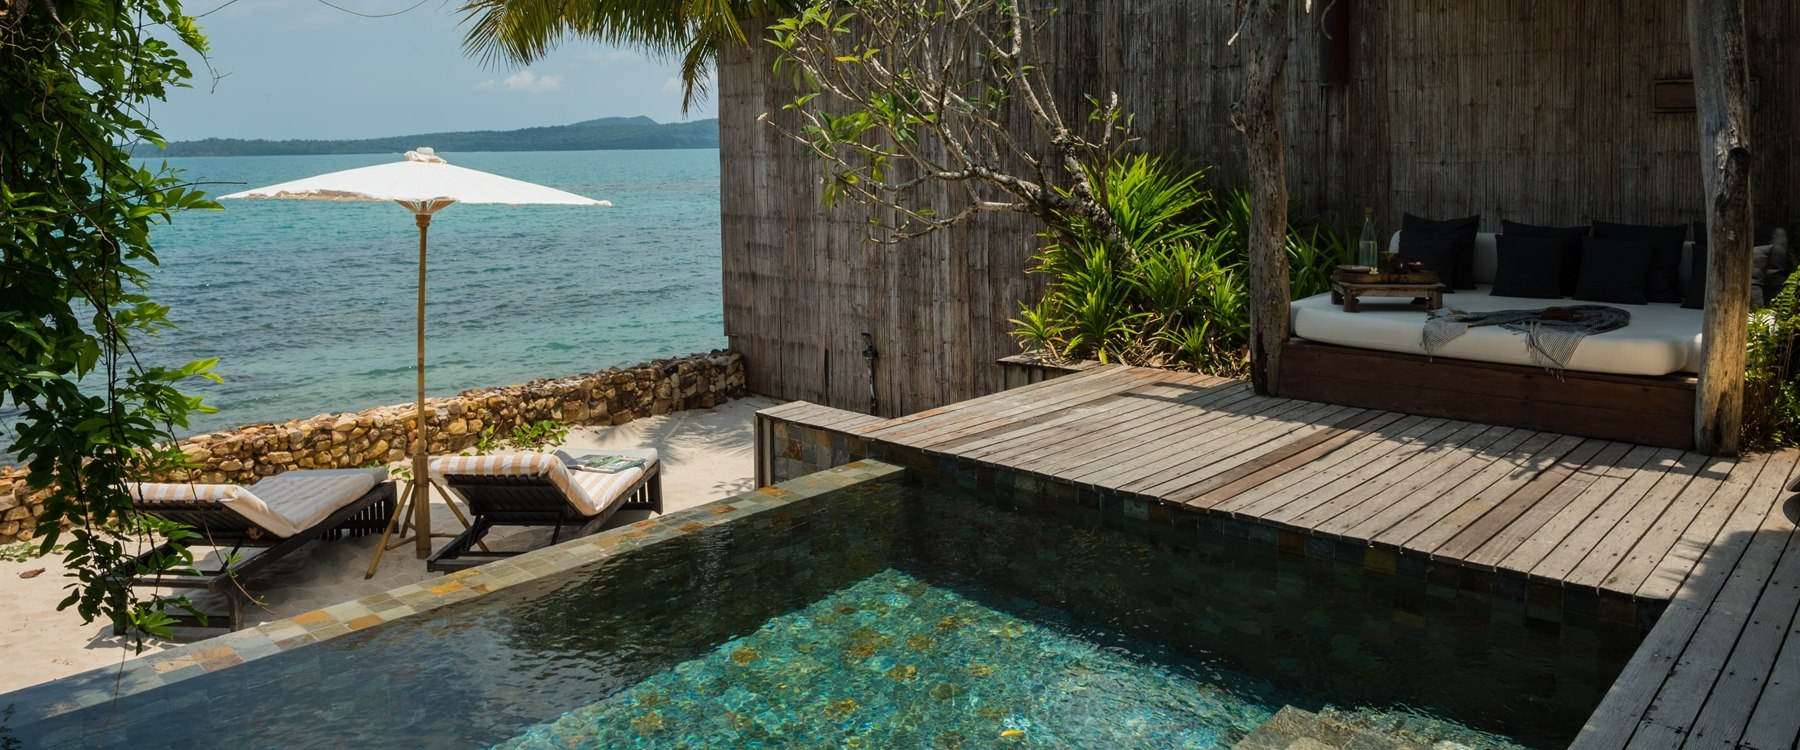 2 bedroom overwater deck at song saa private island cambodia